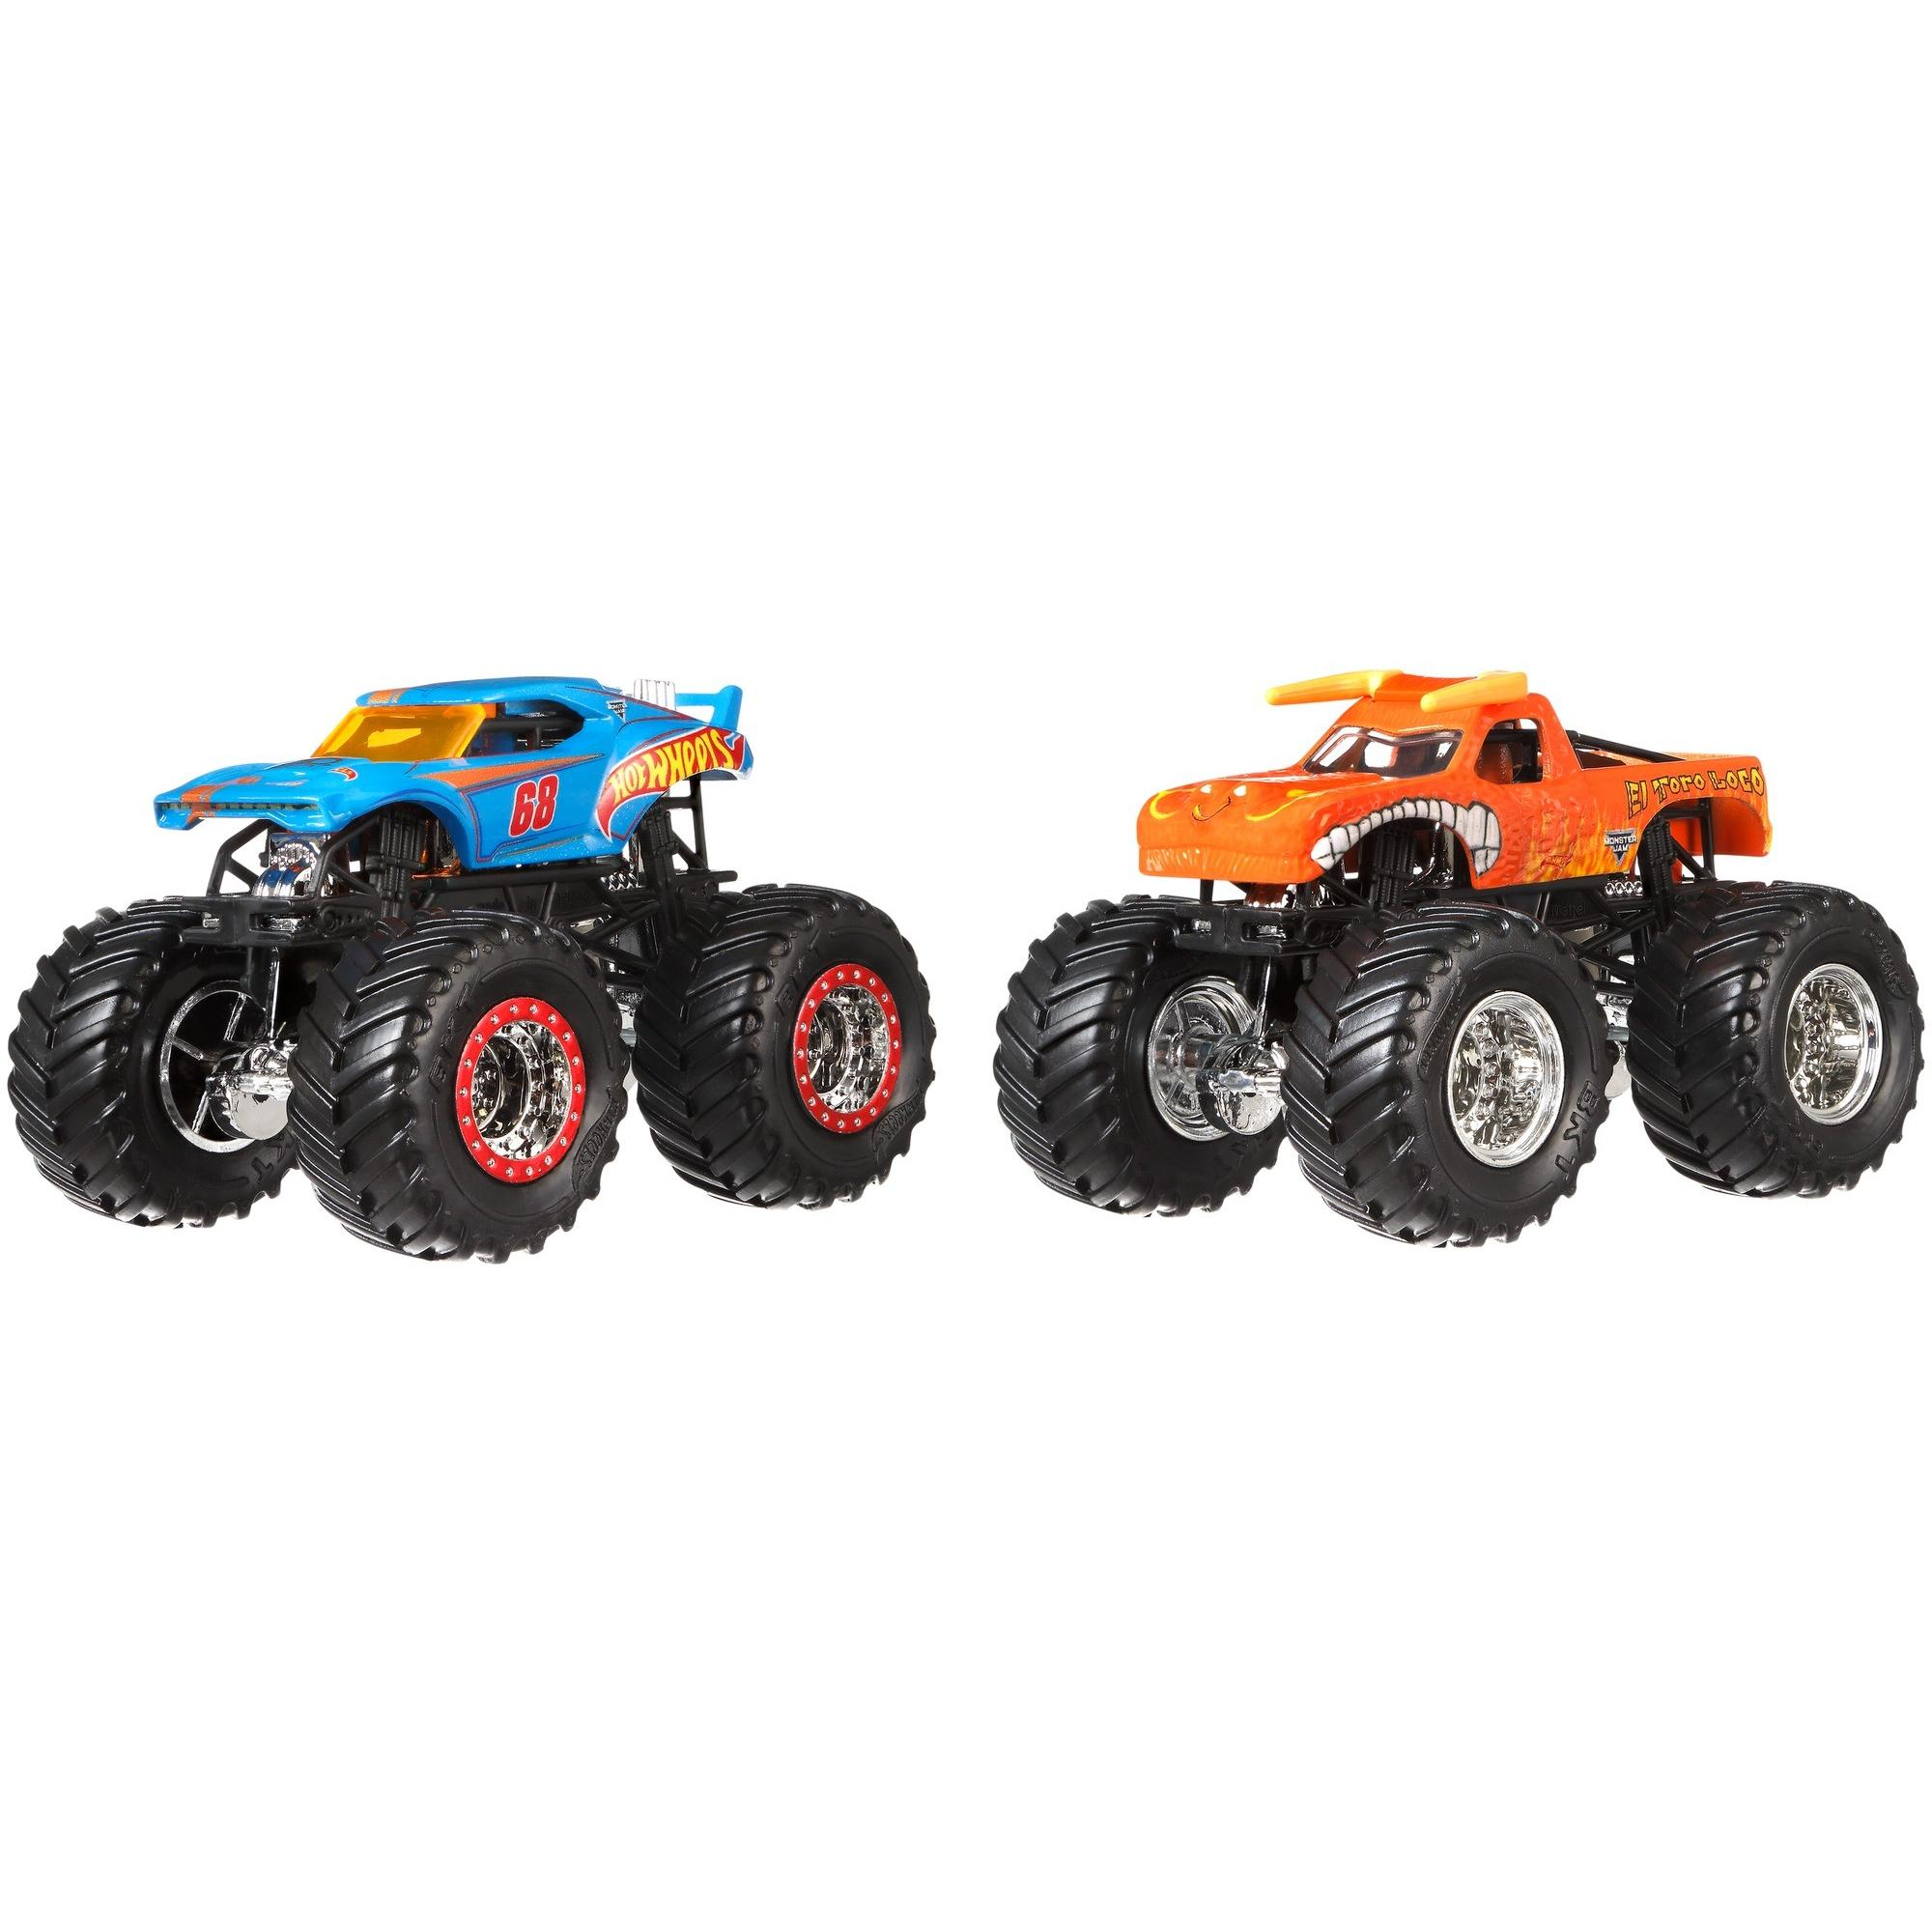 Hot Wheels Monster Jam Demolition Doubles 2-Pack (Styles May Vary) by MATTEL BANGKOK LIMITED